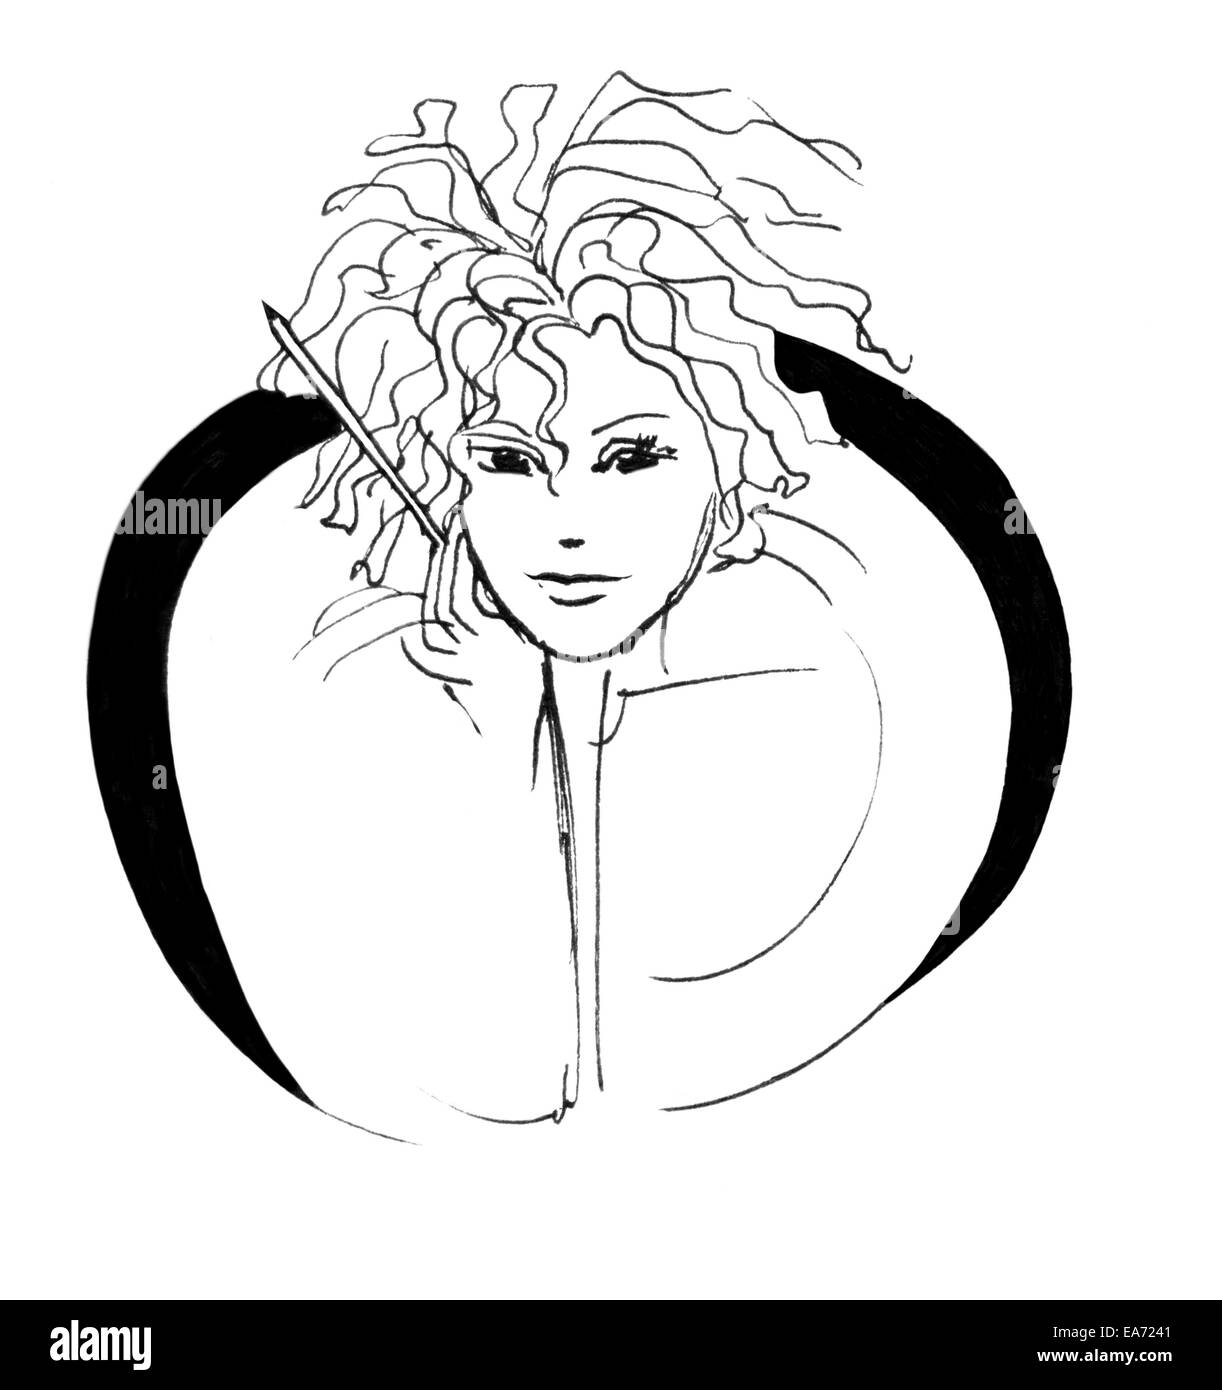 Pen girl, girl or woman writer with a pencil in abstract half circle. Black and white ink sketch isolated on white. Stock Photo